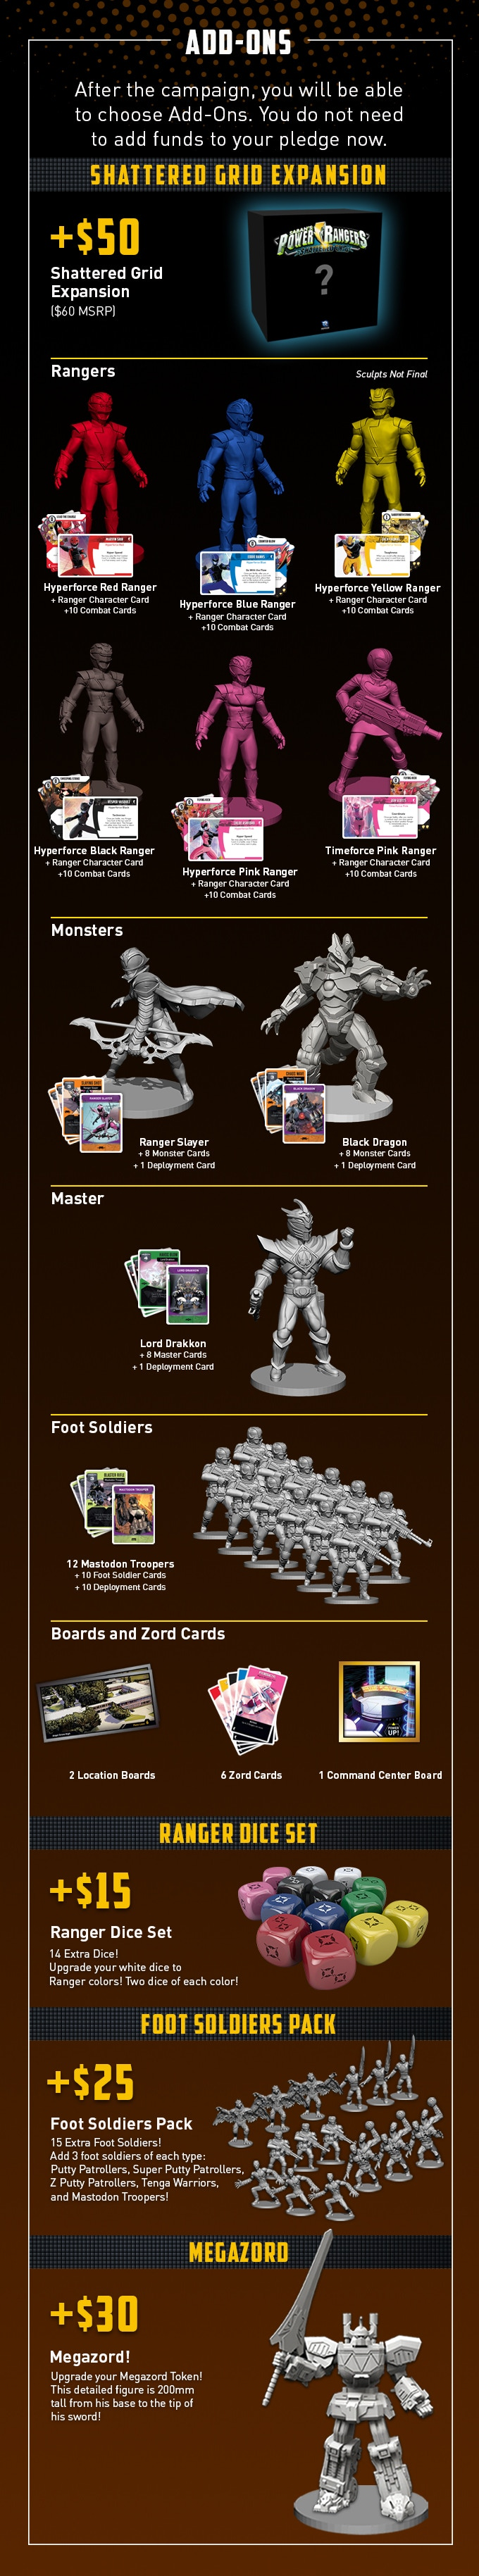 Power Rangers_Heroes of the Grid_kickstarter goals_base set (3)